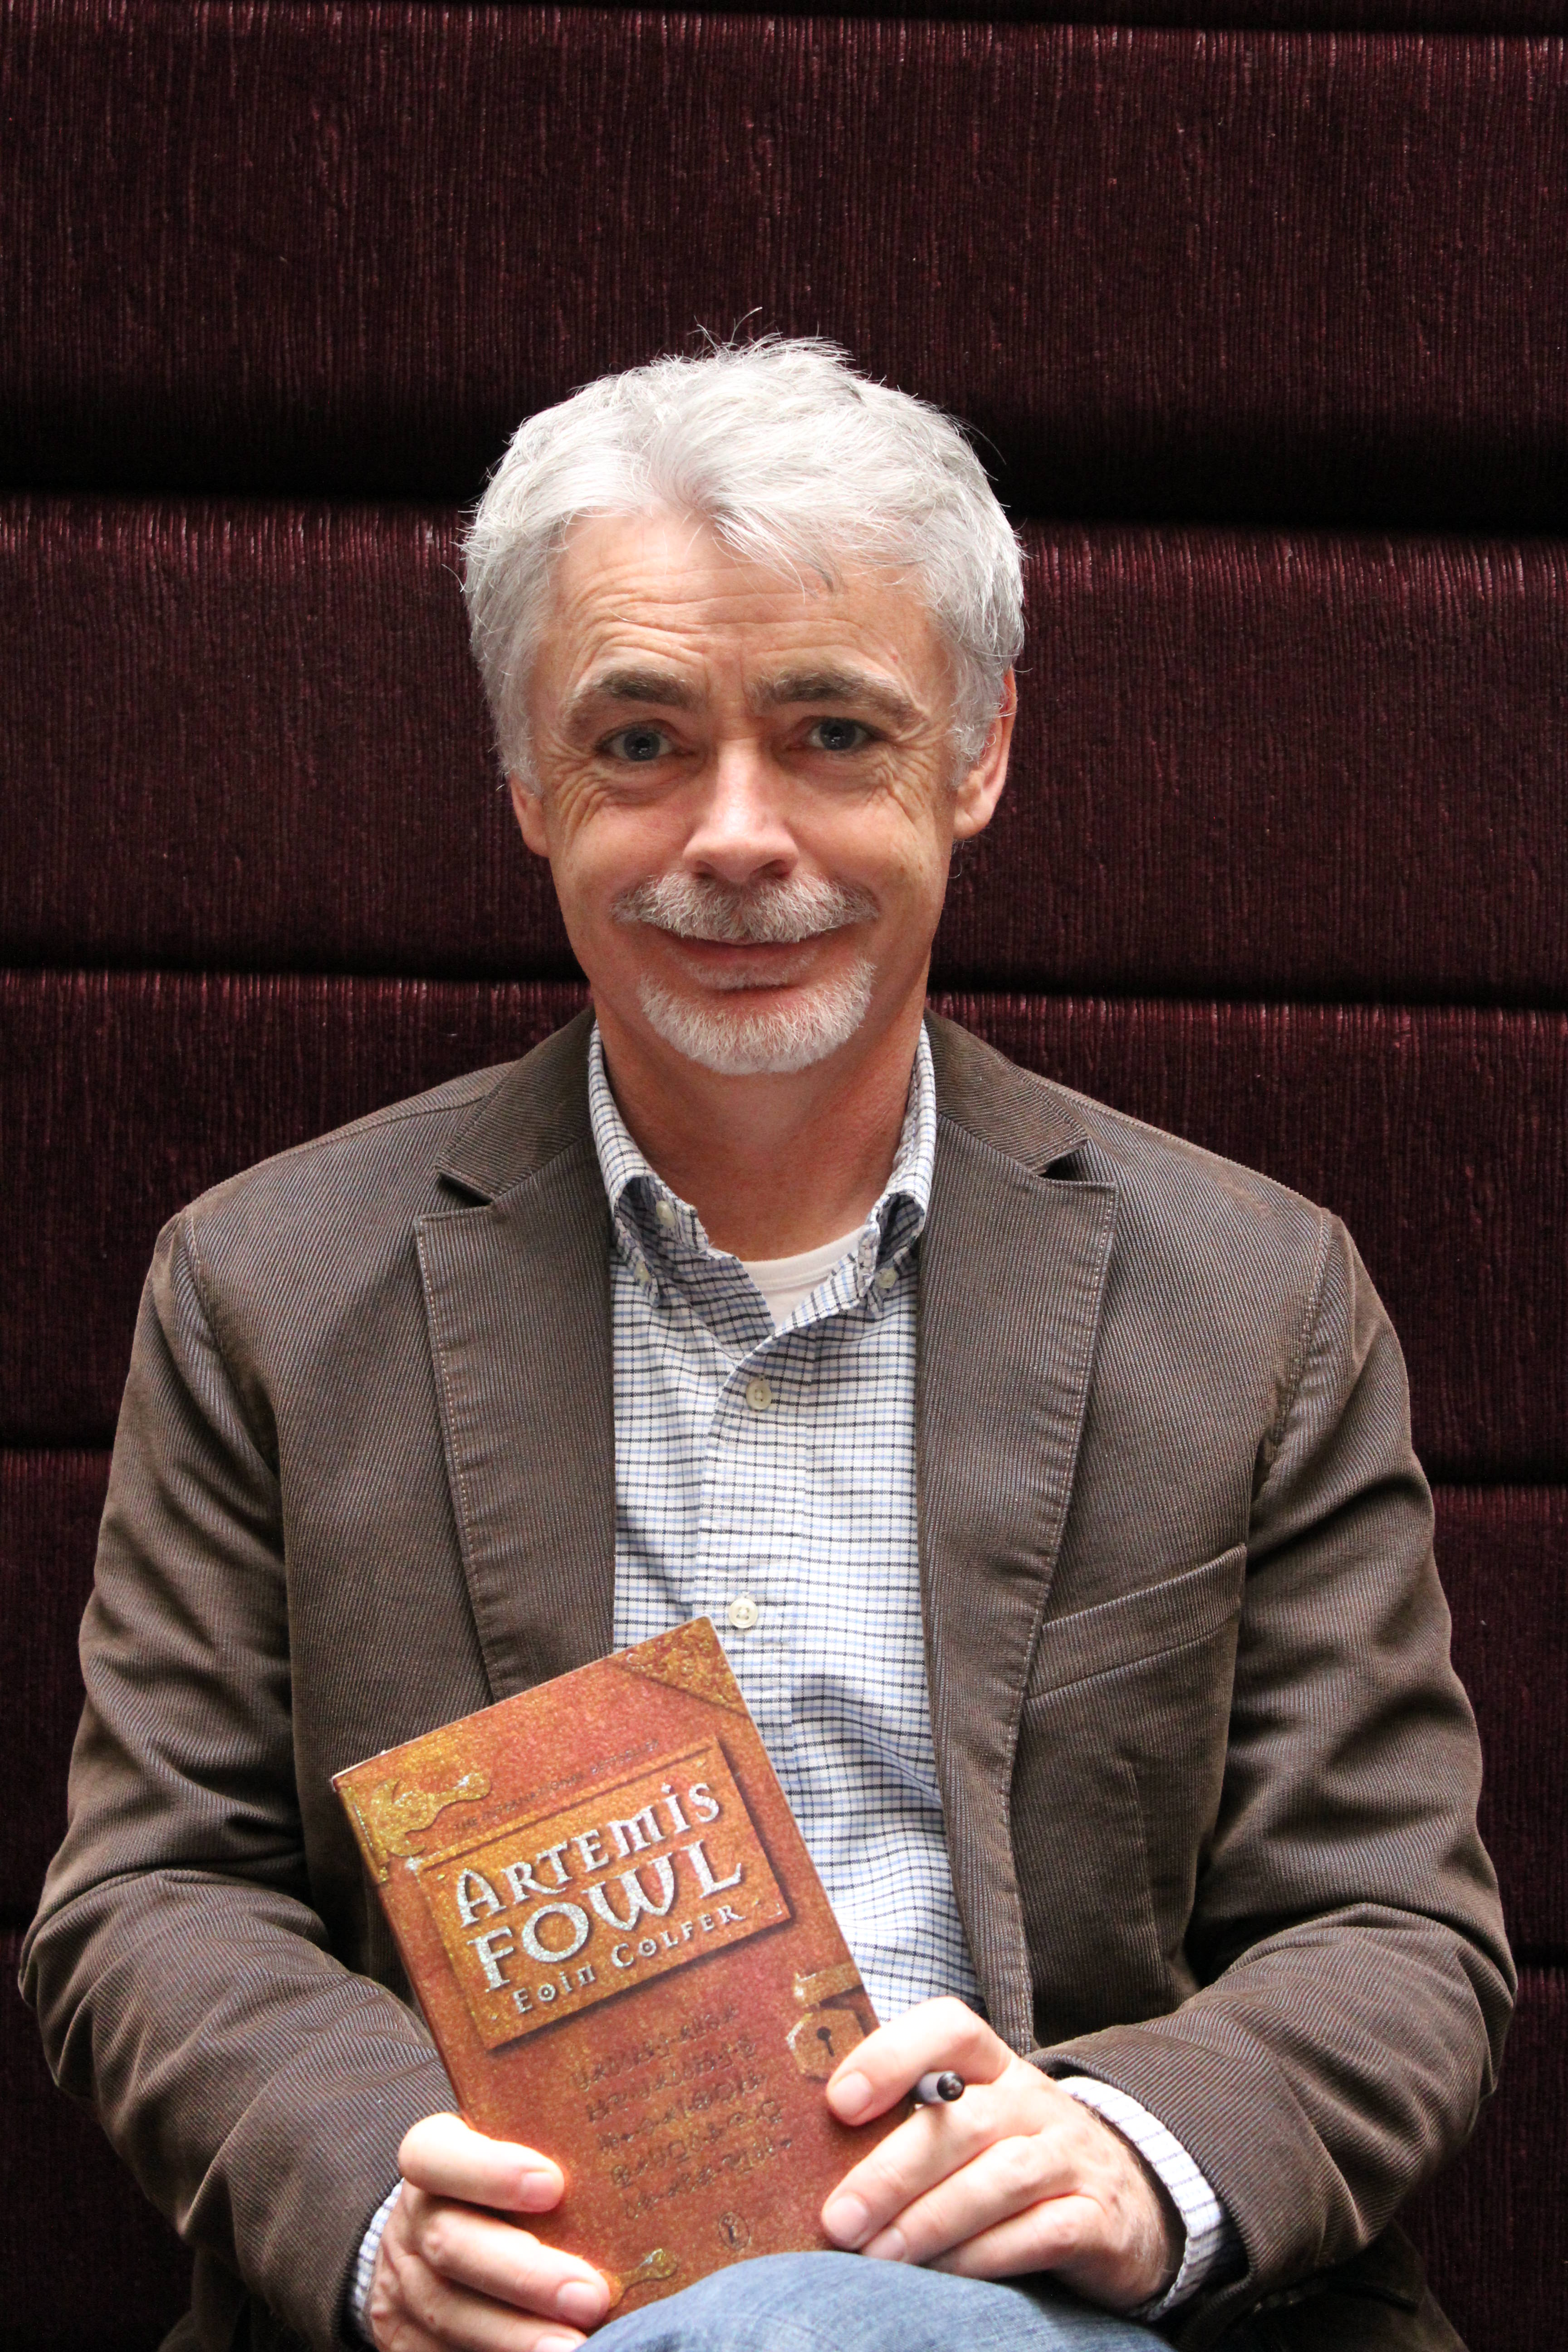 Eoin Colfer in Melbourne